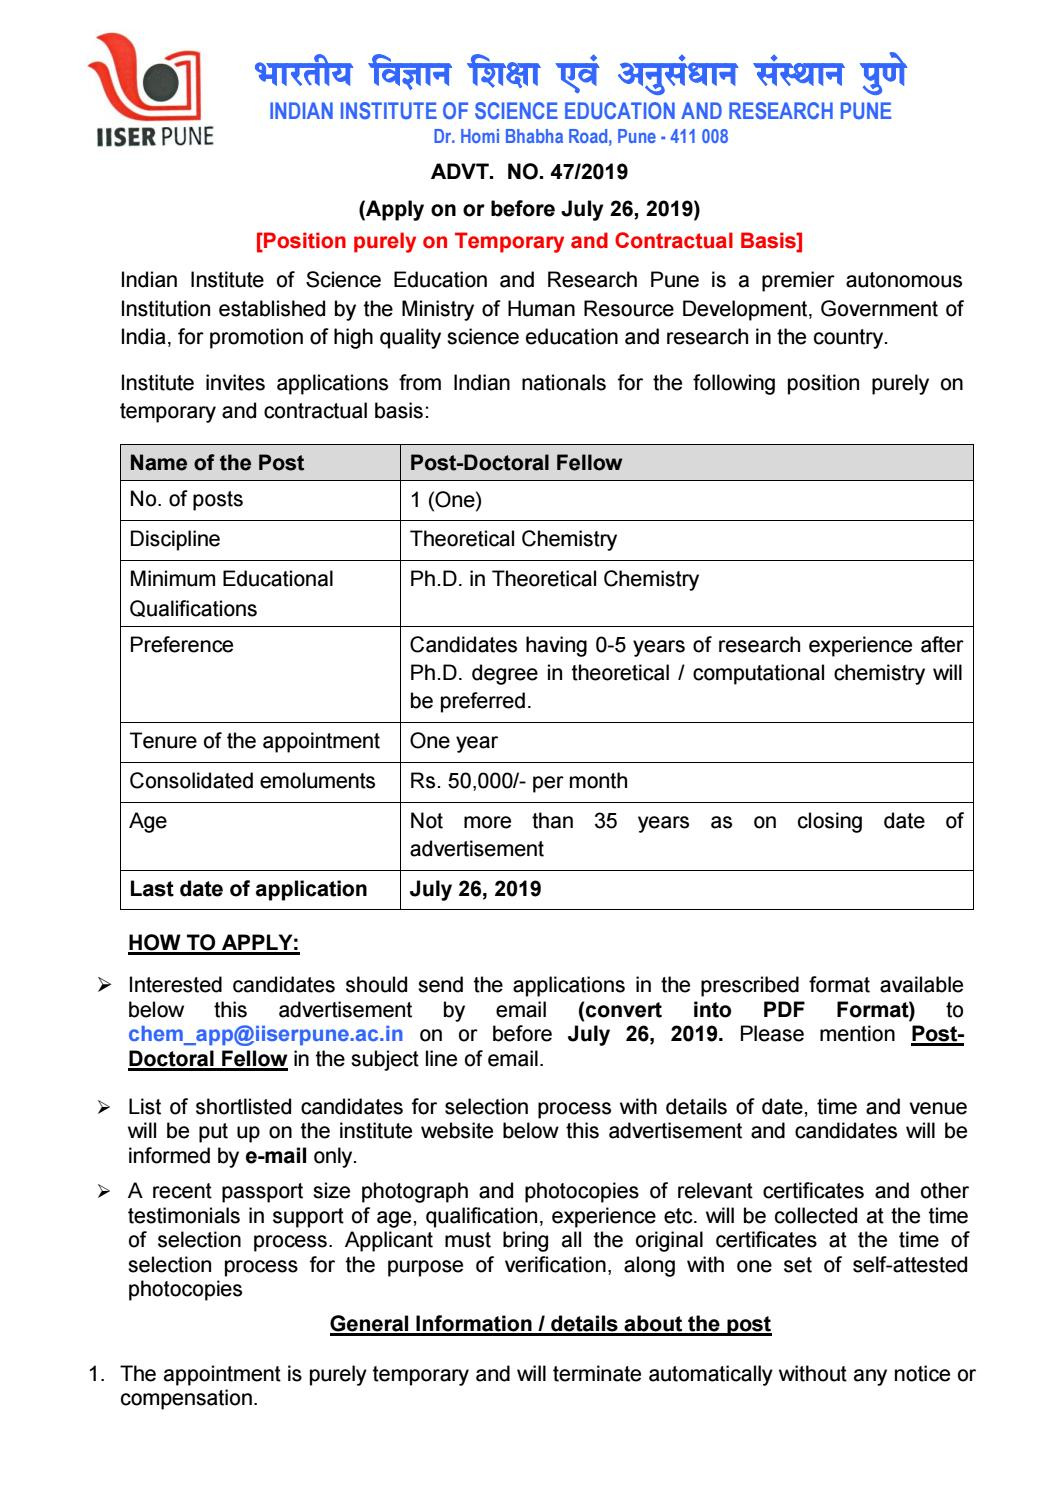 IISER Pune Hiring Post Doc Chemistry Candidates